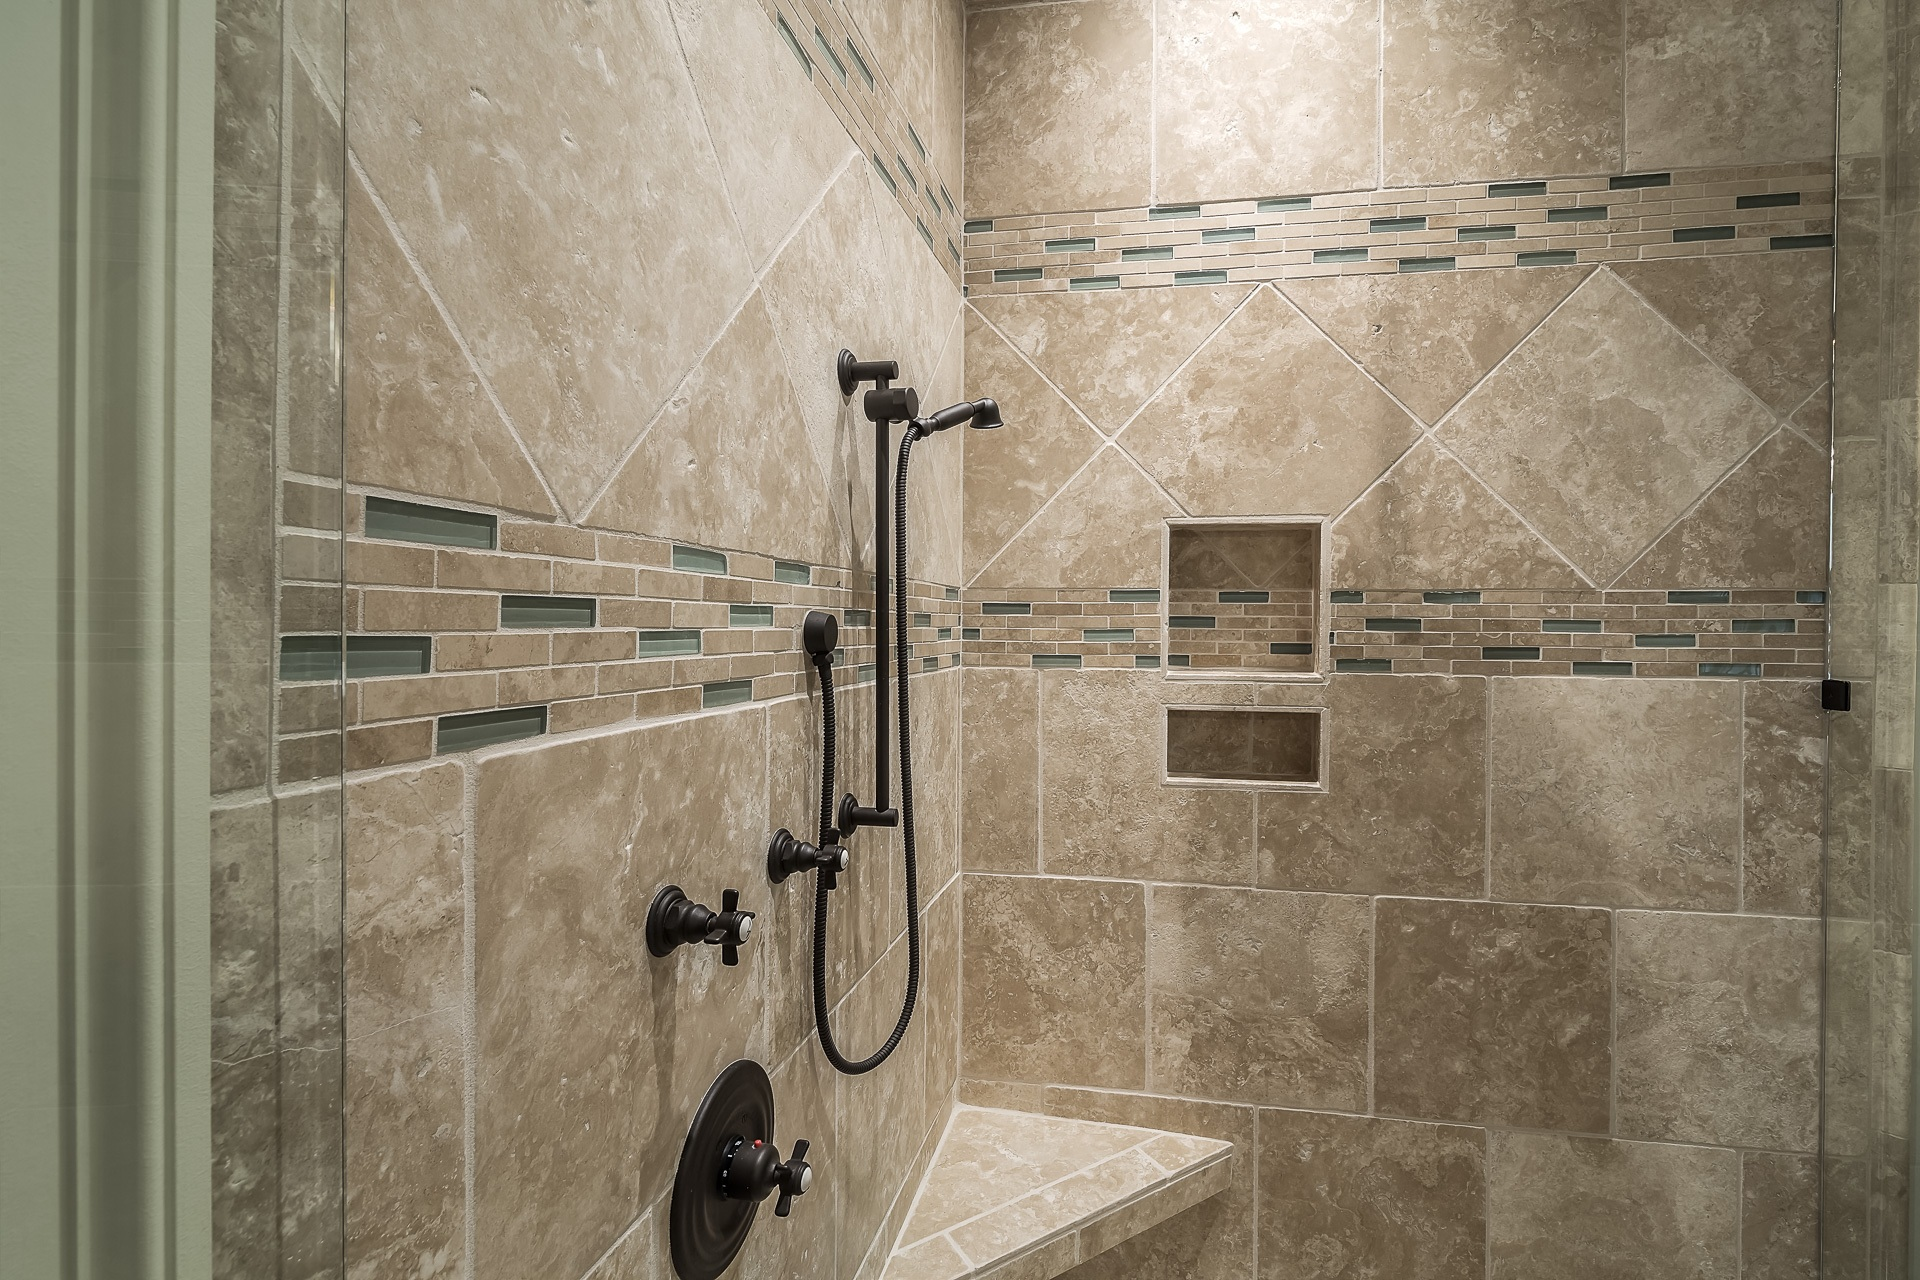 9 Tips and Tricks for Planning a Bathroom Remodel - Tile With a Smile